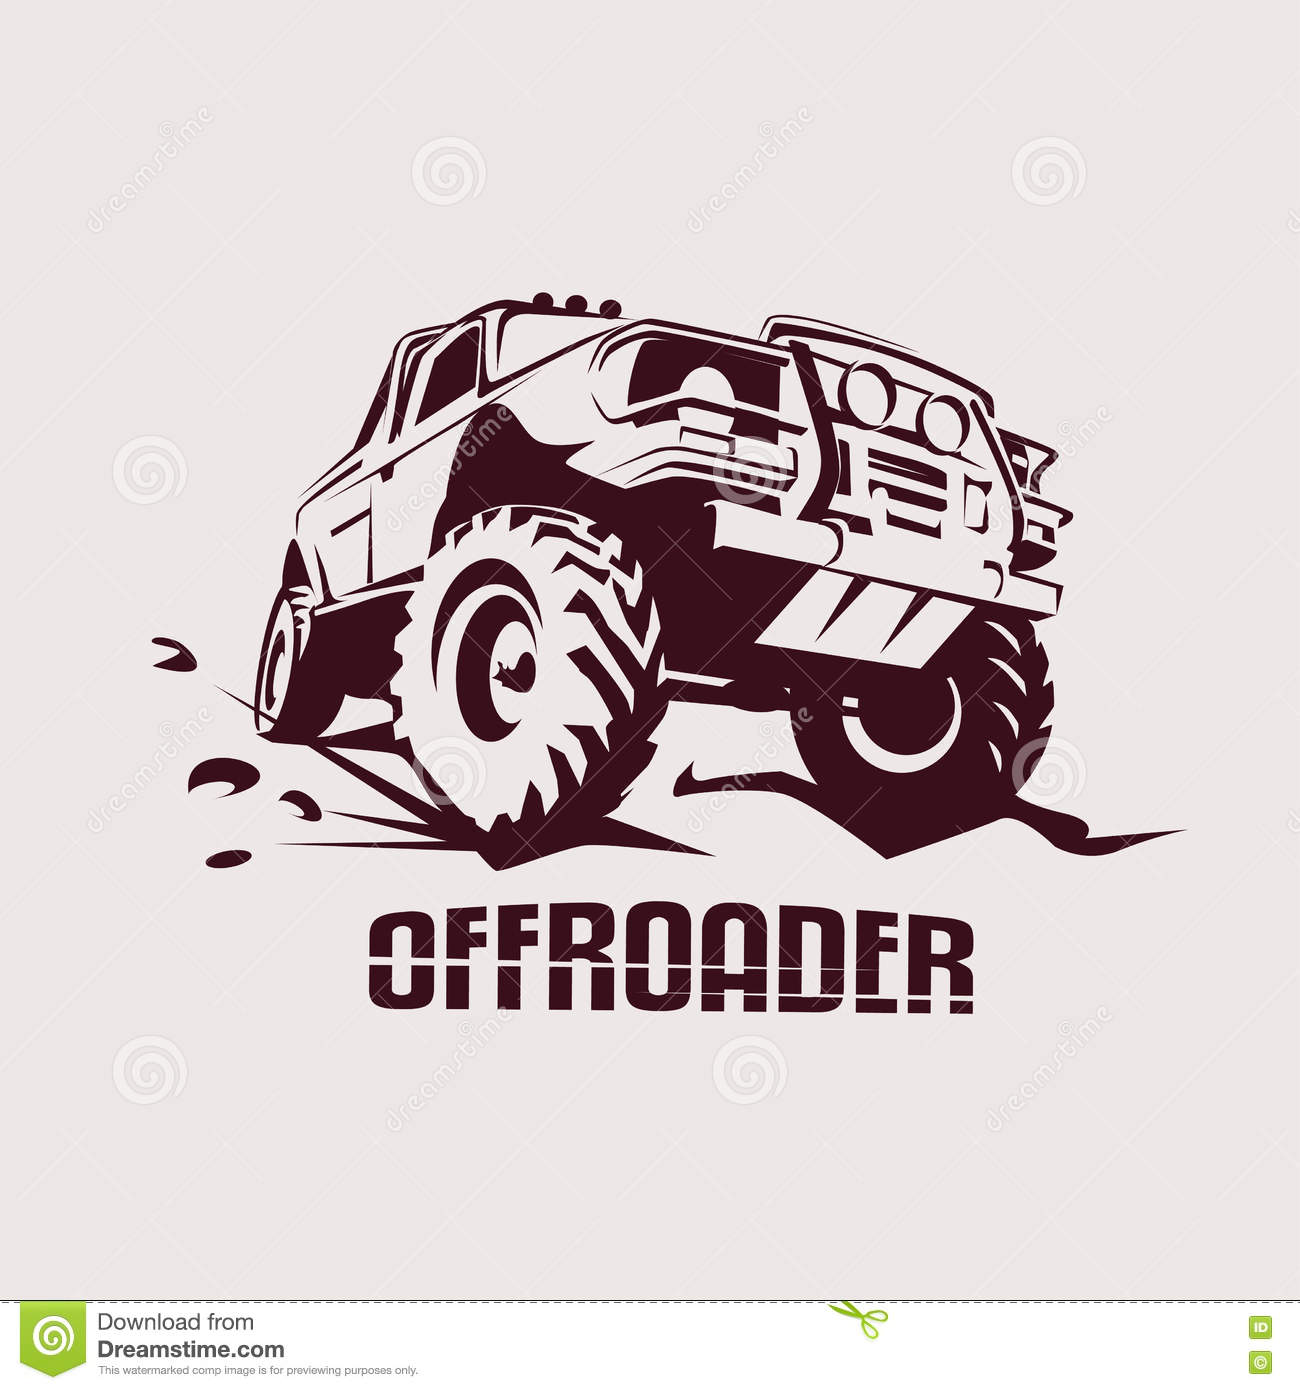 Offroad Suv Car Template For Labels, Emblems, Badges Stock